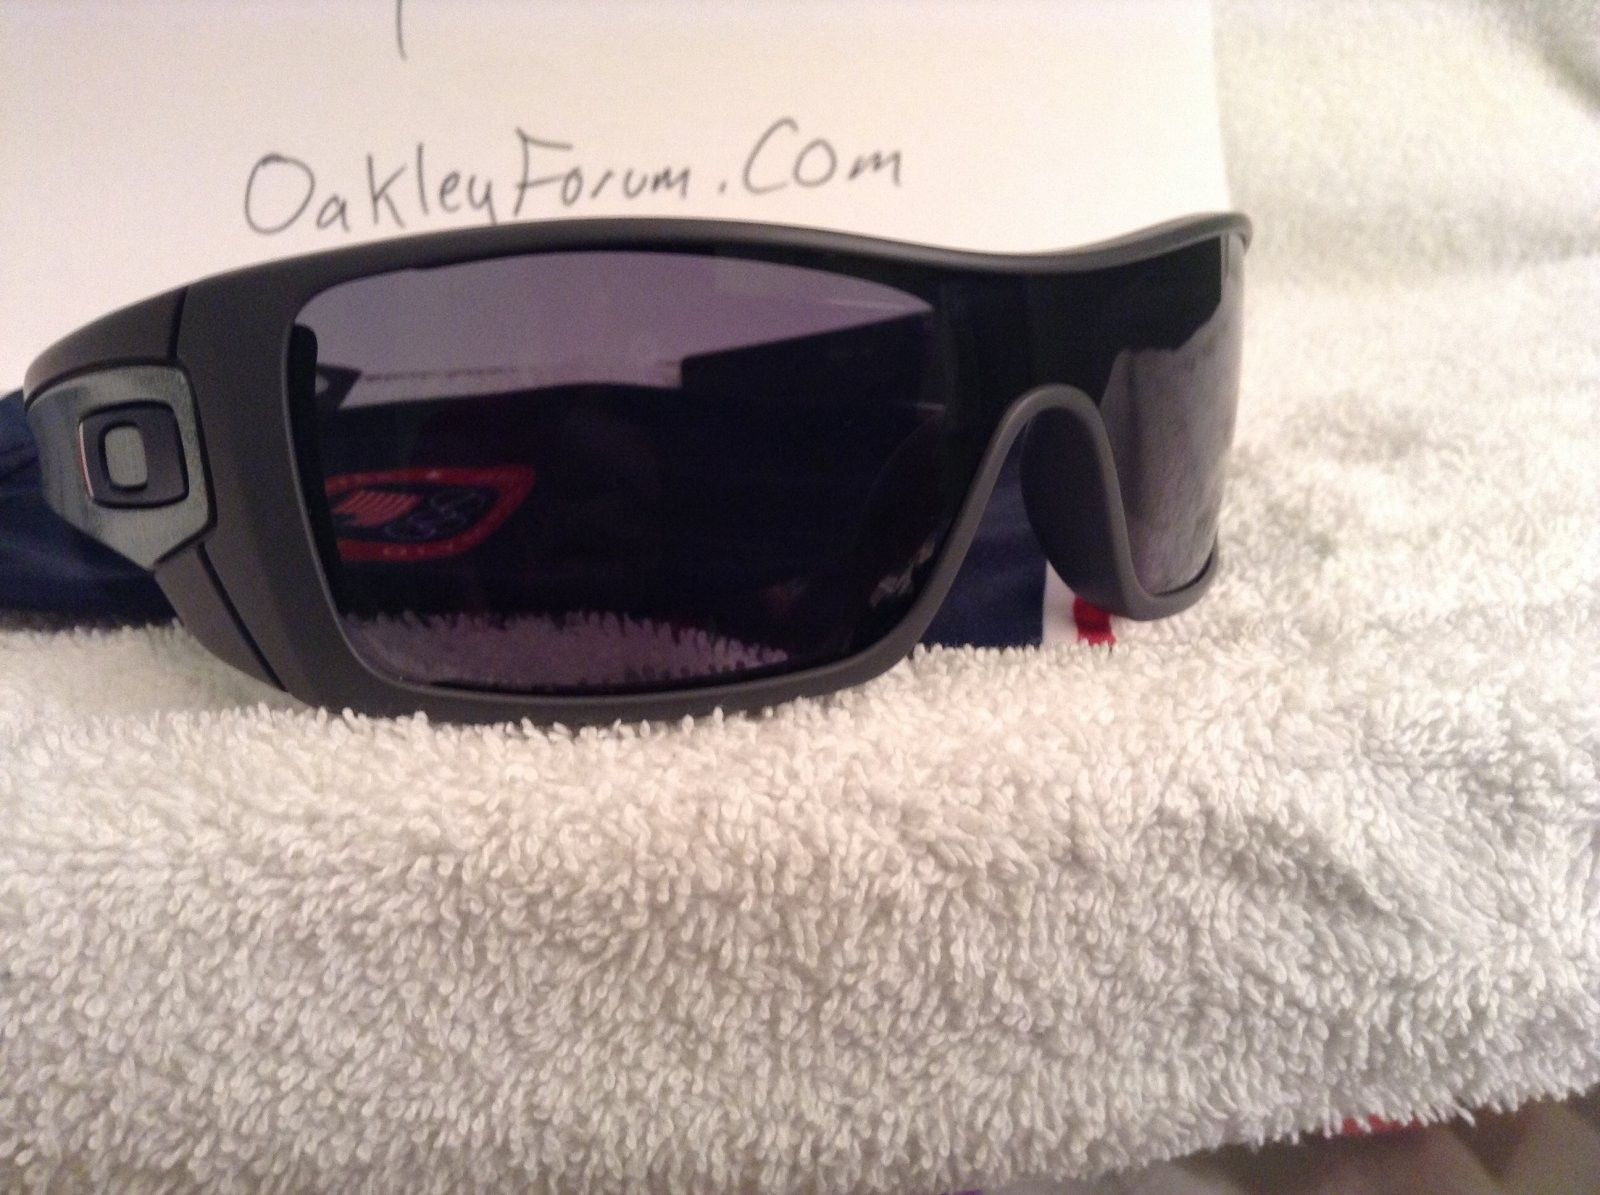 Oakley Team USA LNIB Batwolf, Fuel Cell, Radar - image.jpg